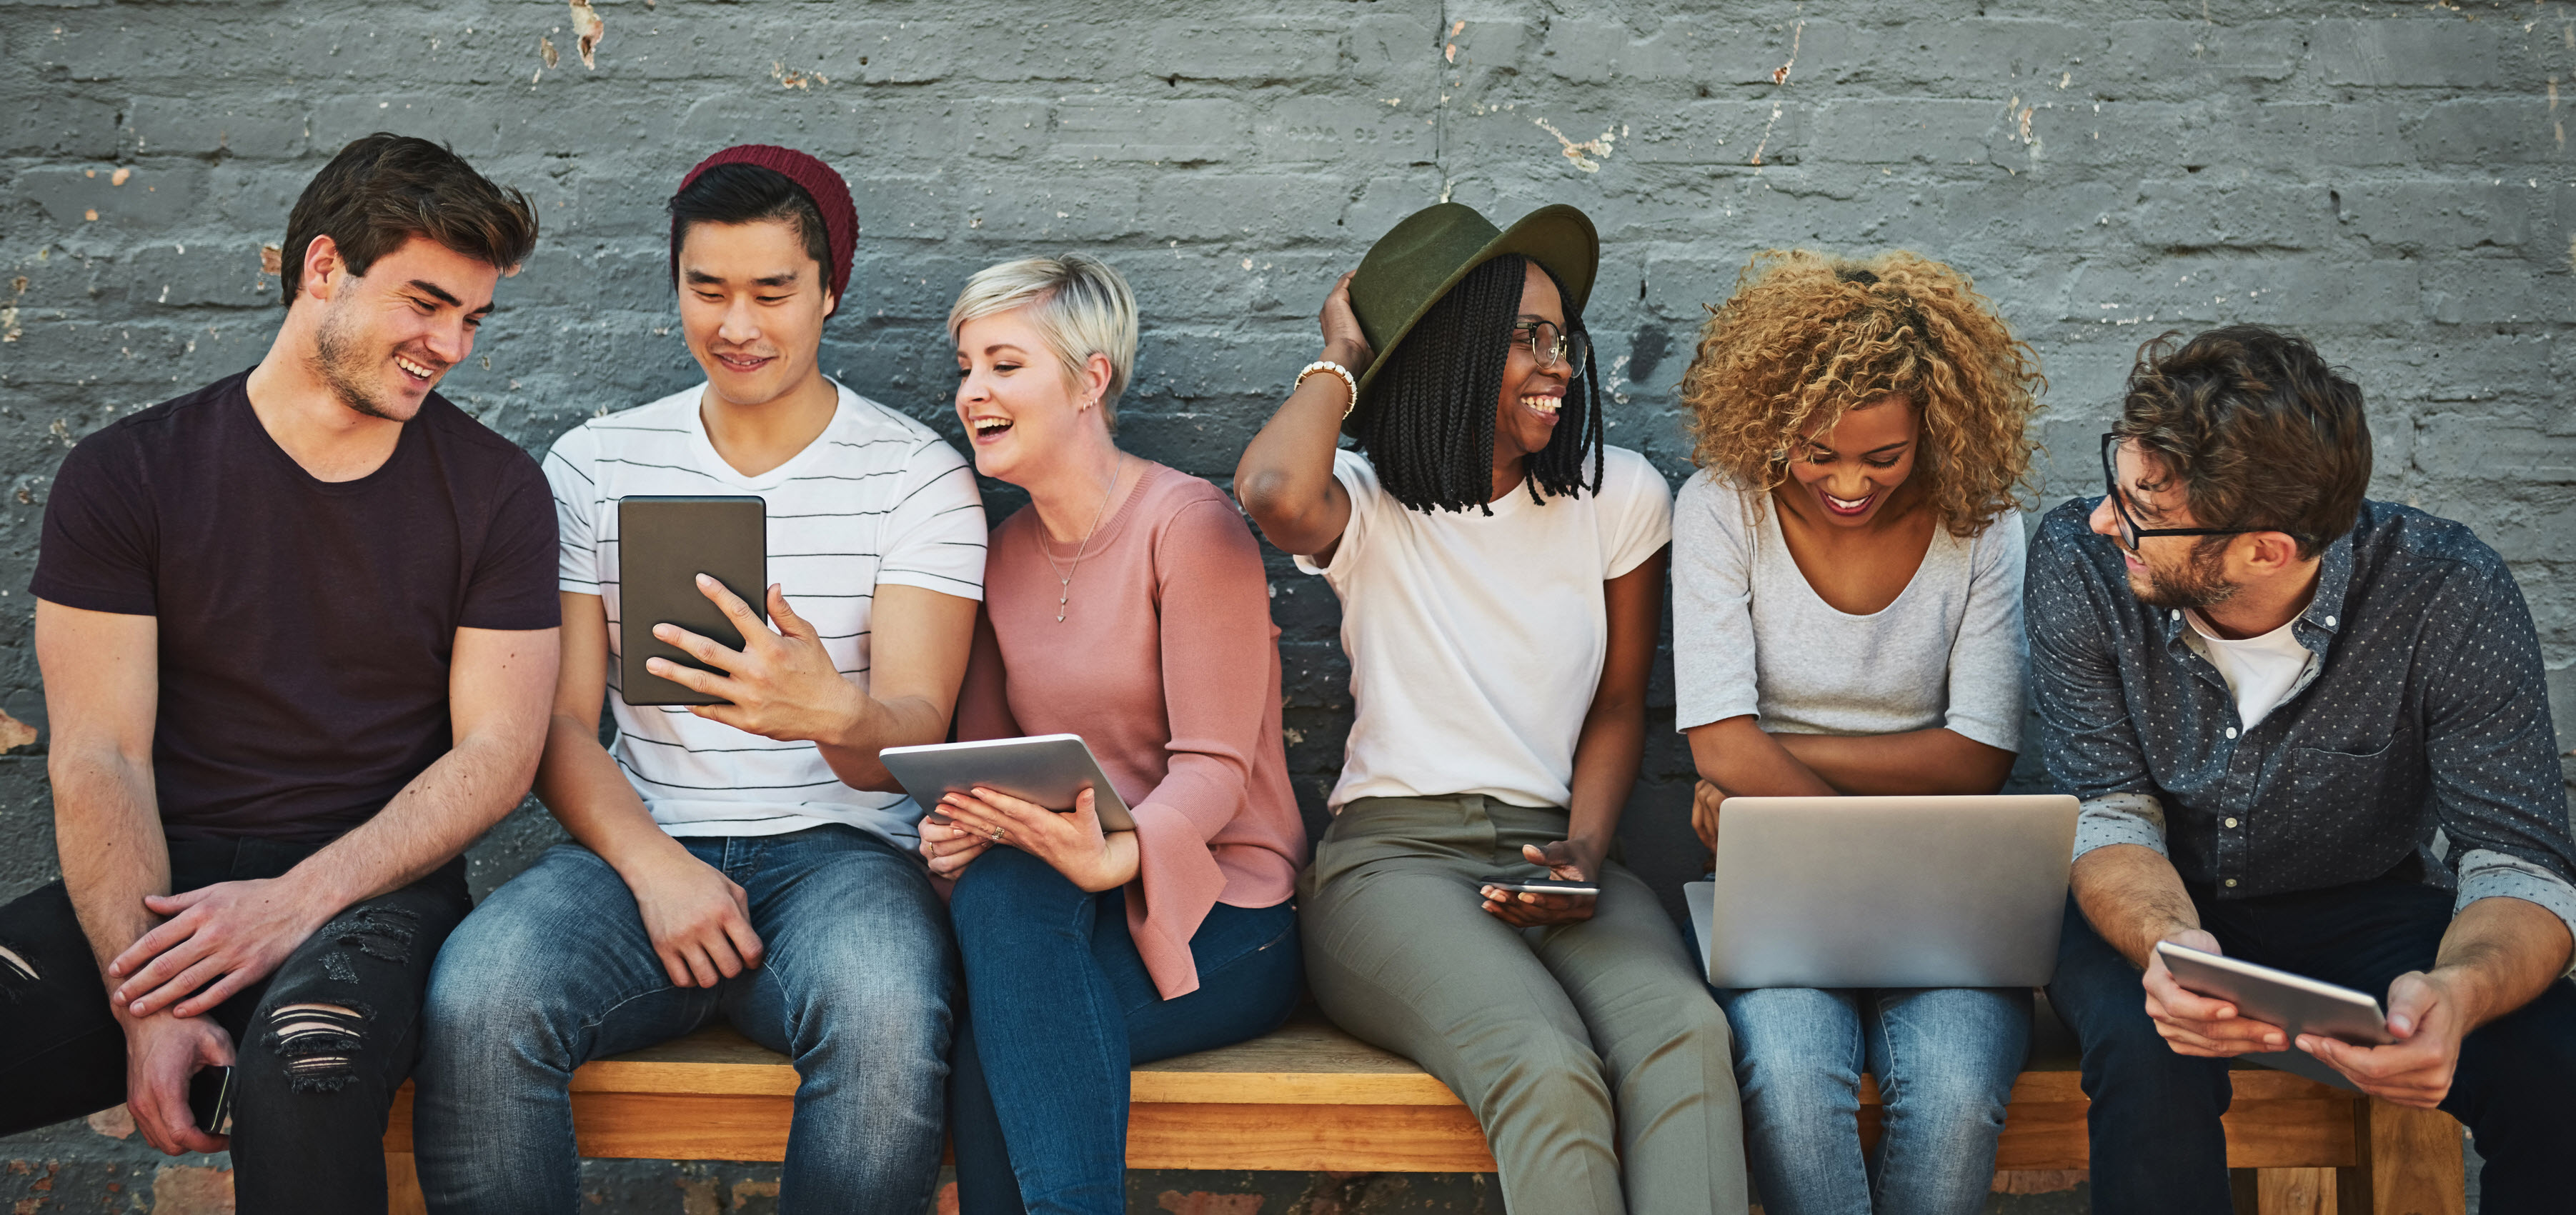 iStock-862201574 young people on bench devices crop